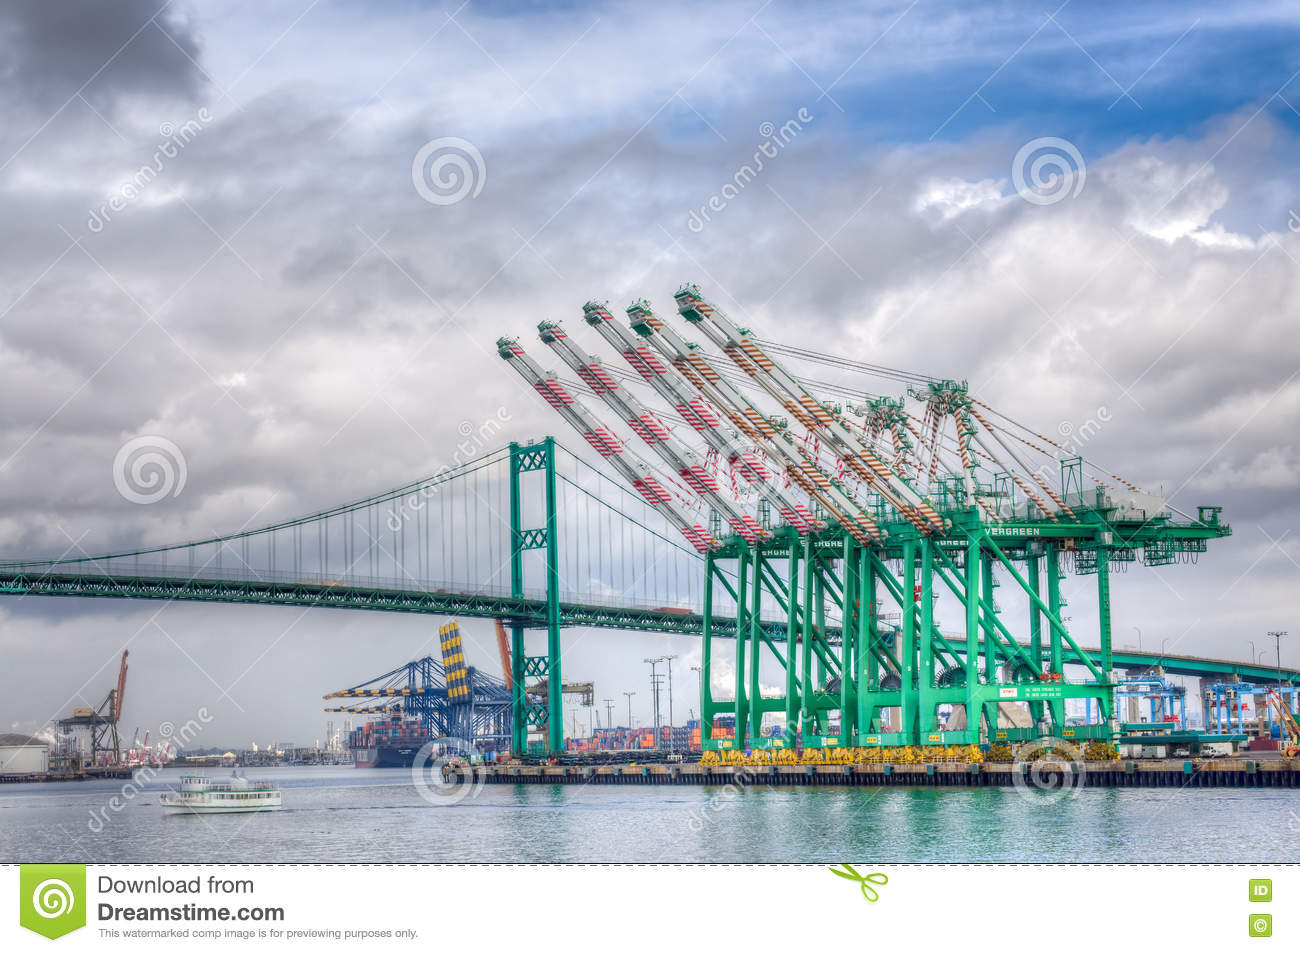 Evergreen Marine Corporation Container Cranes at Port of Los Angeles